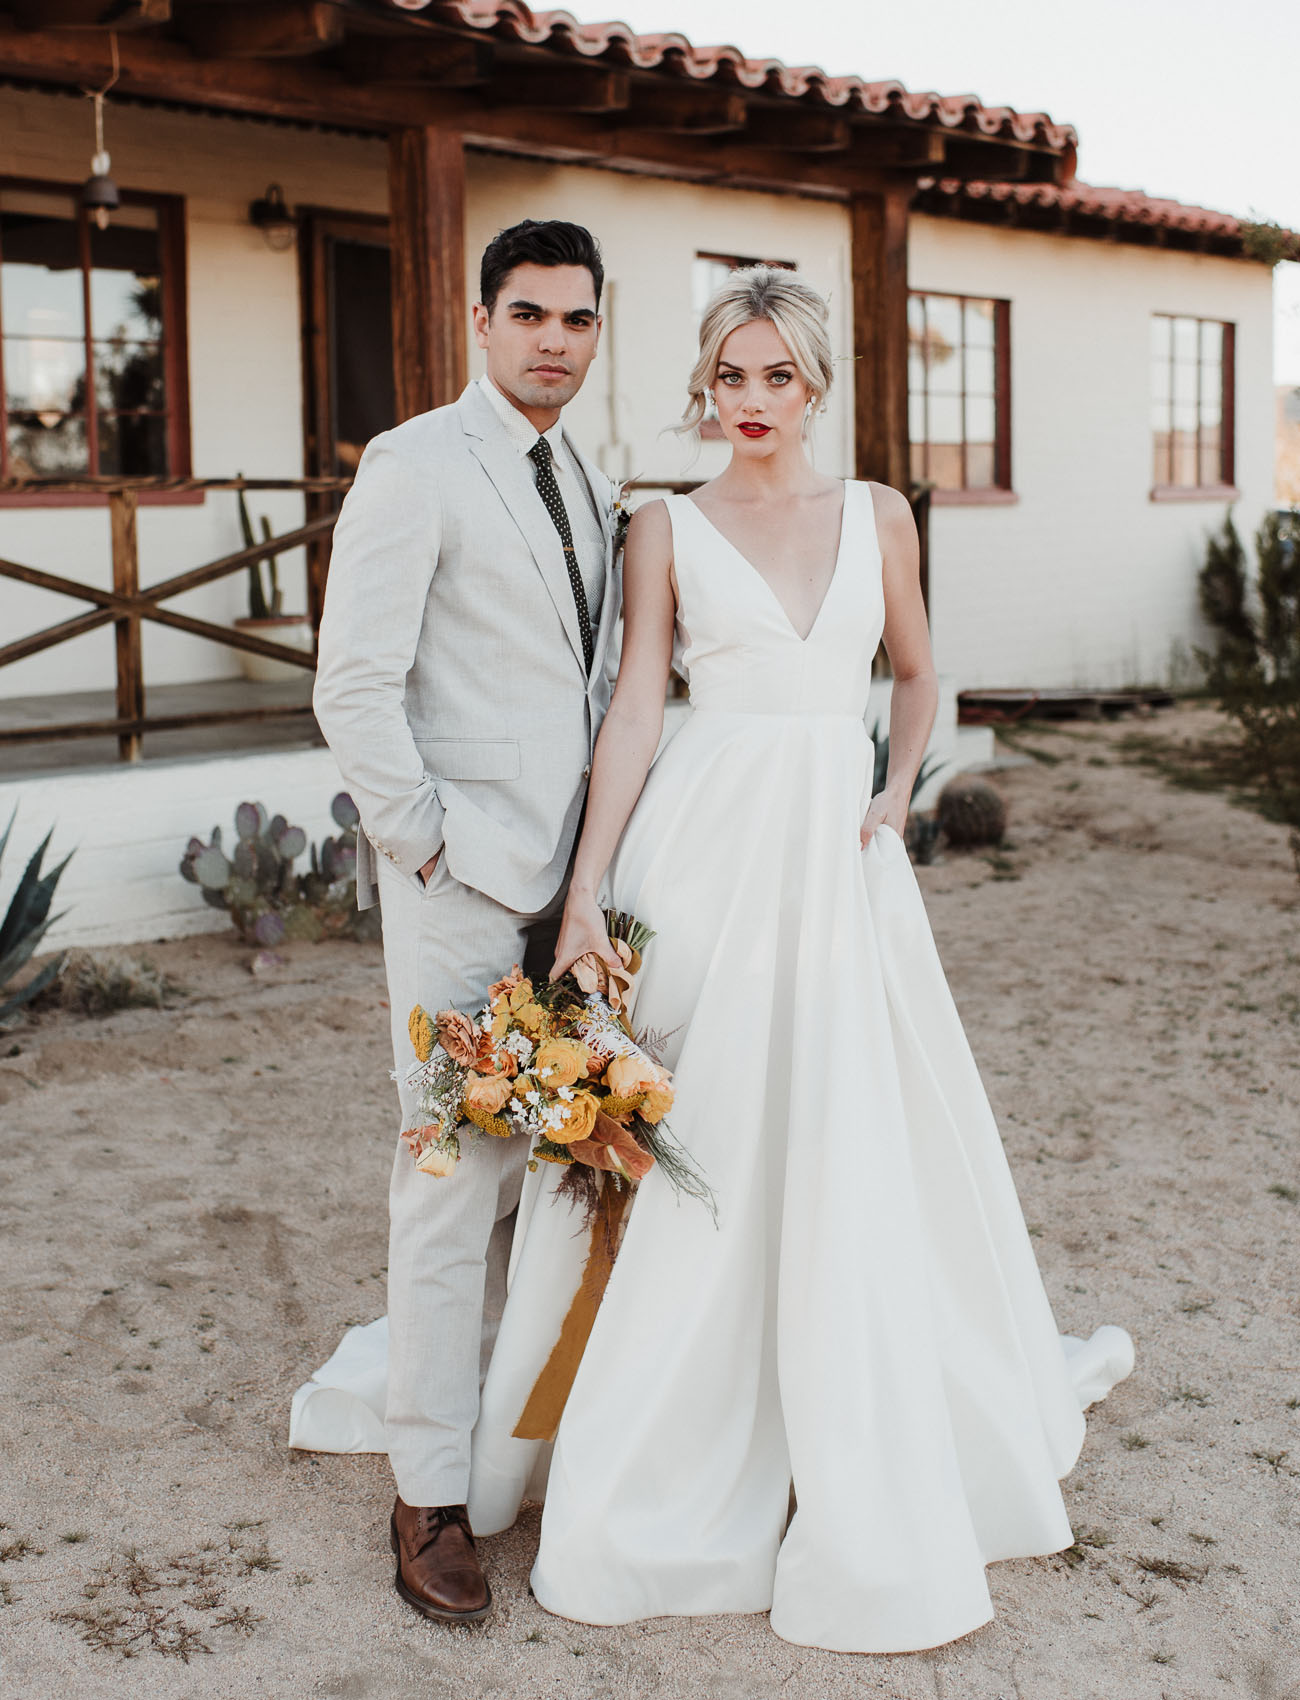 The bride's lips were red and she was rocking a wavy updo, the groom was wearing a dove grey suit with a printed tie and brown shoes